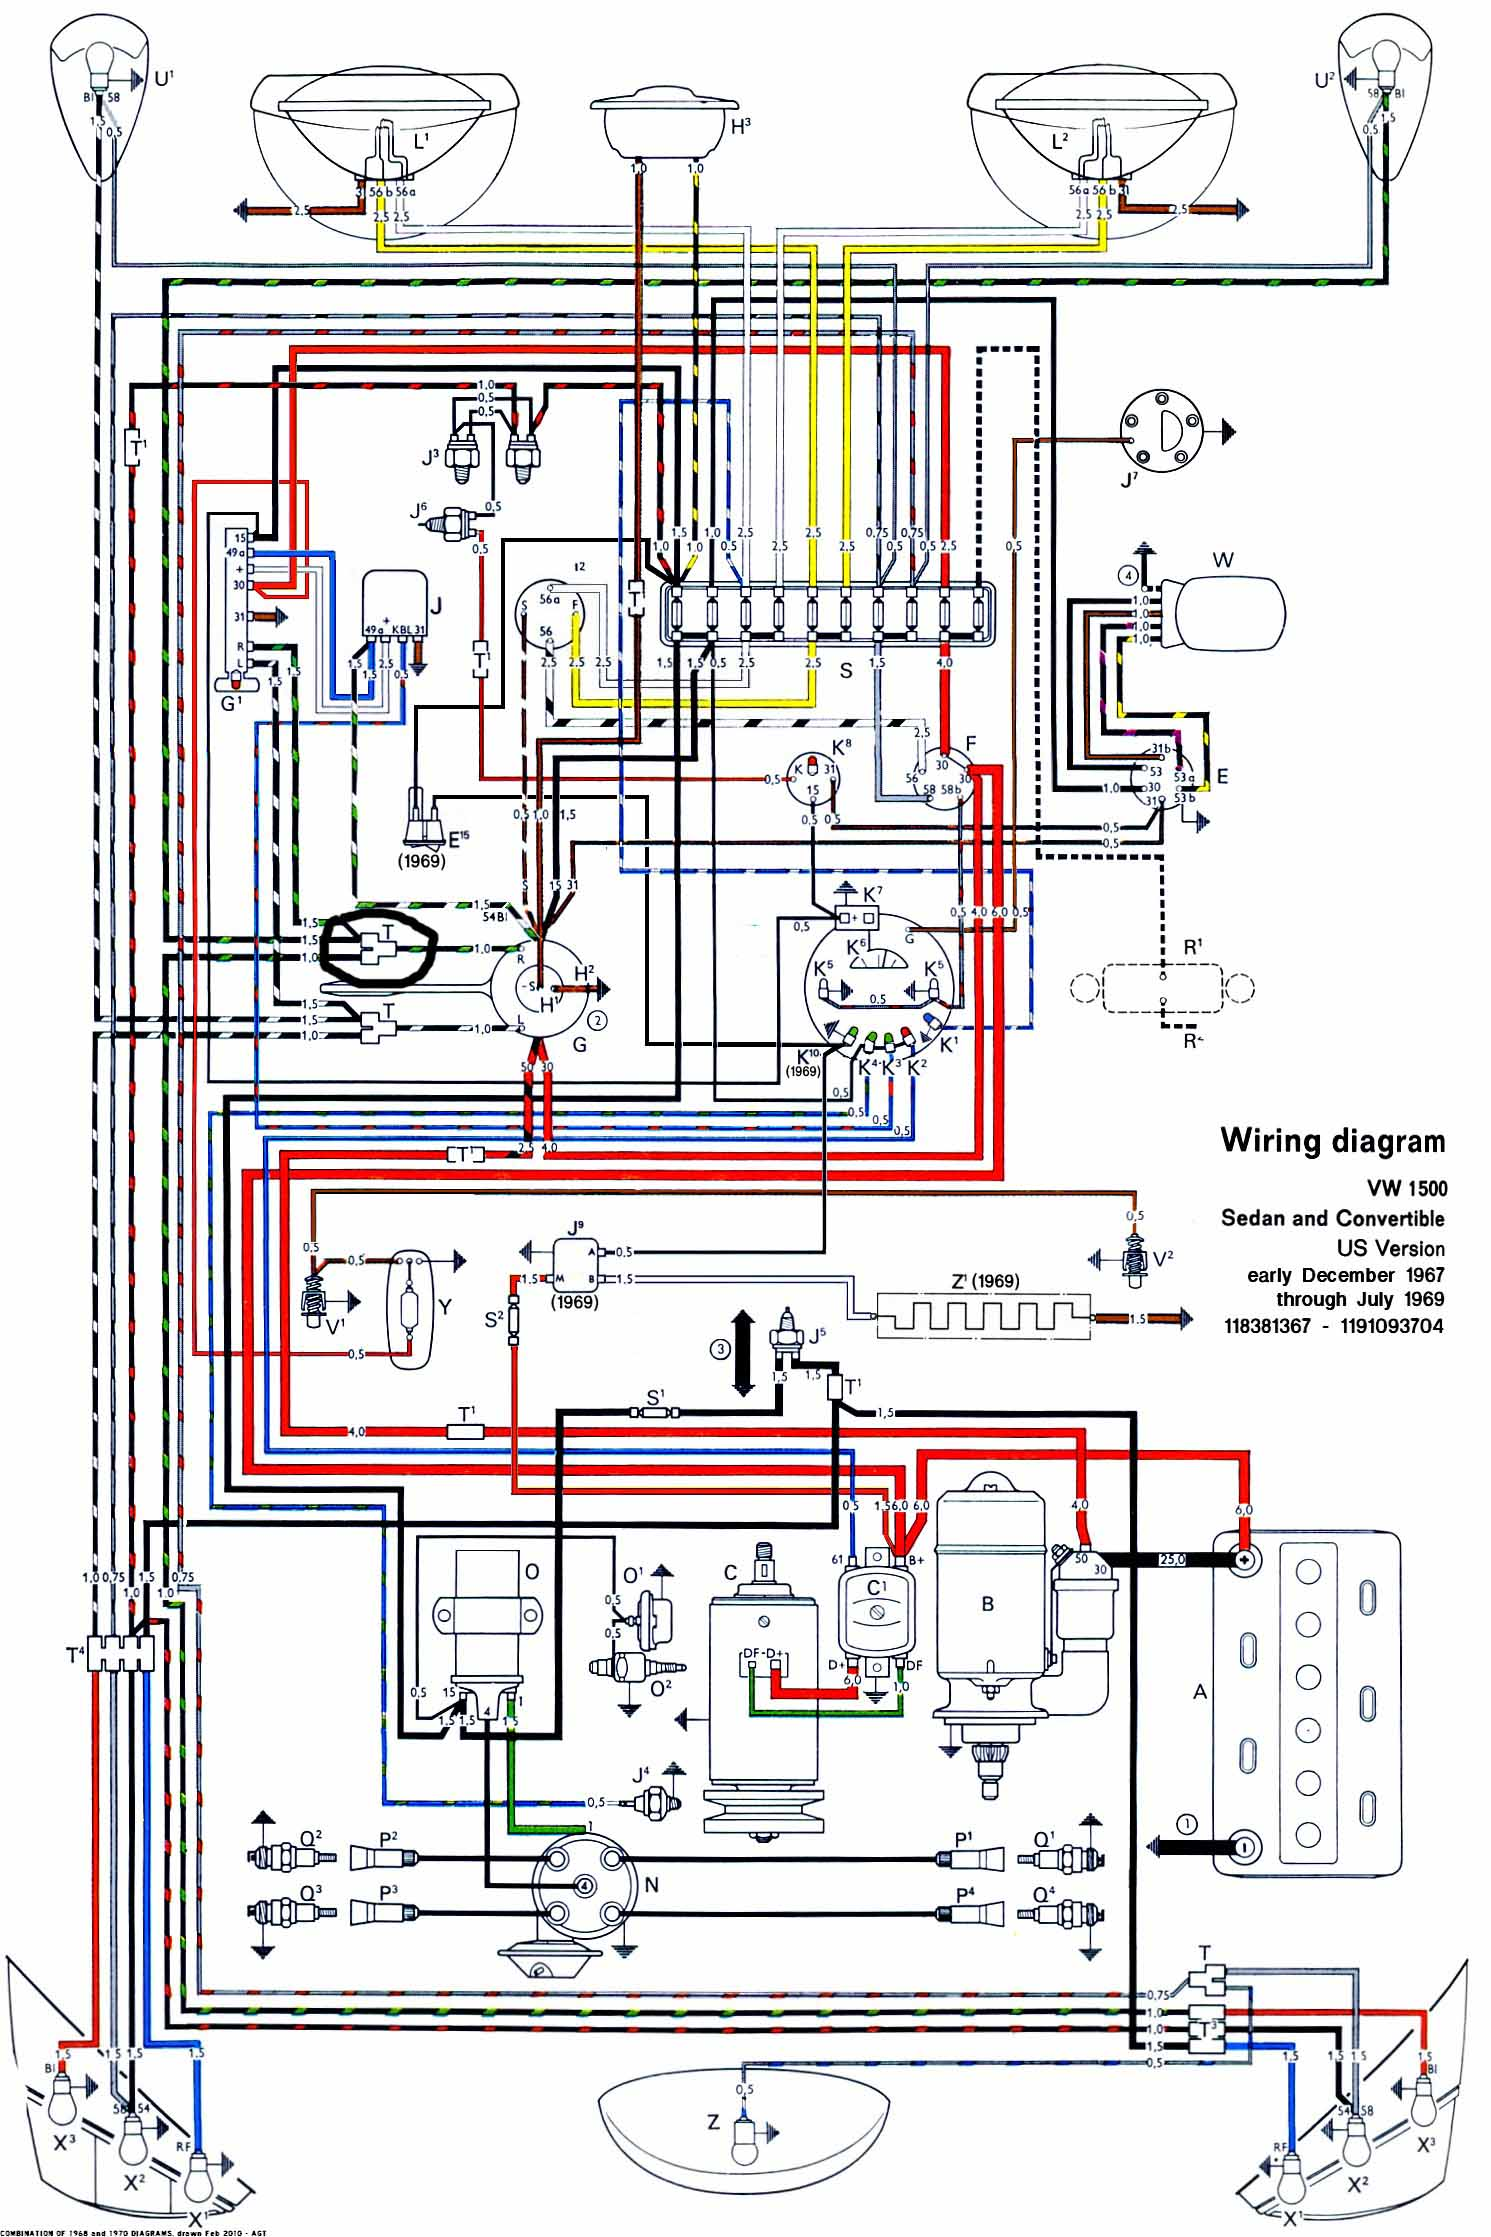 wiring installation diagram farmall cub for 1971 vw beetle  the